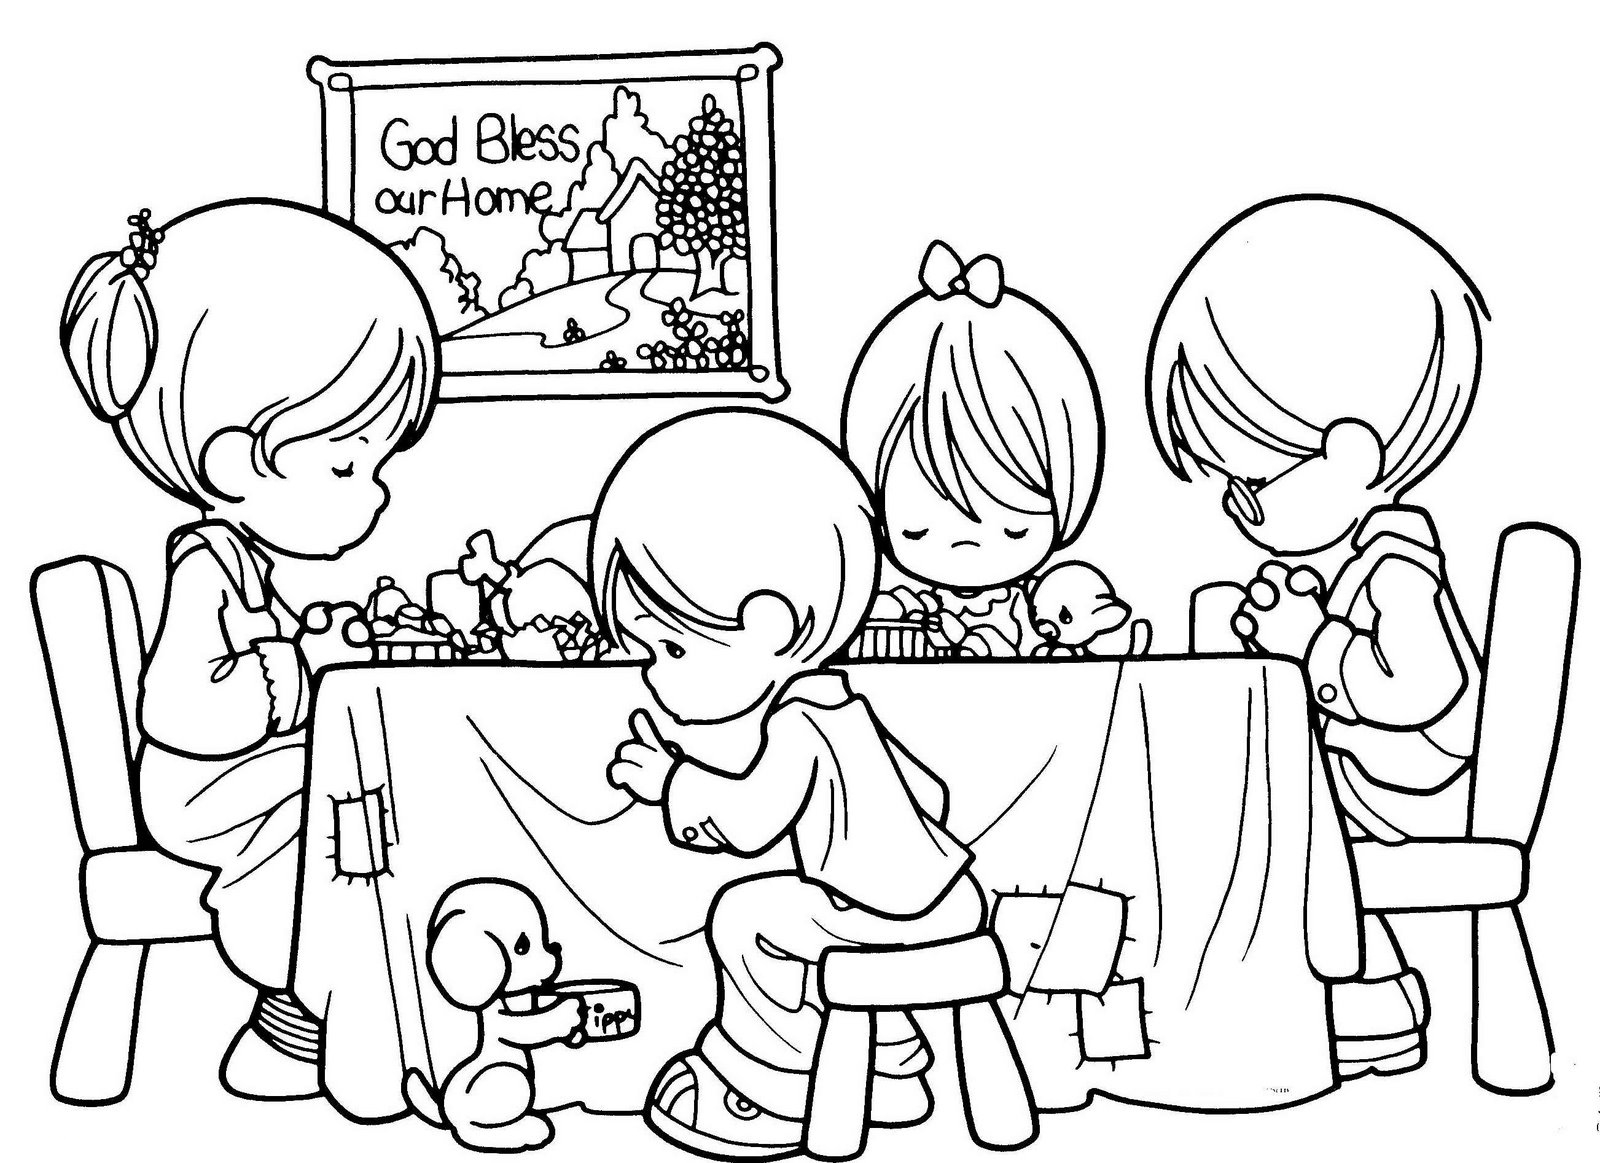 christian youth coloring pages - photo#4